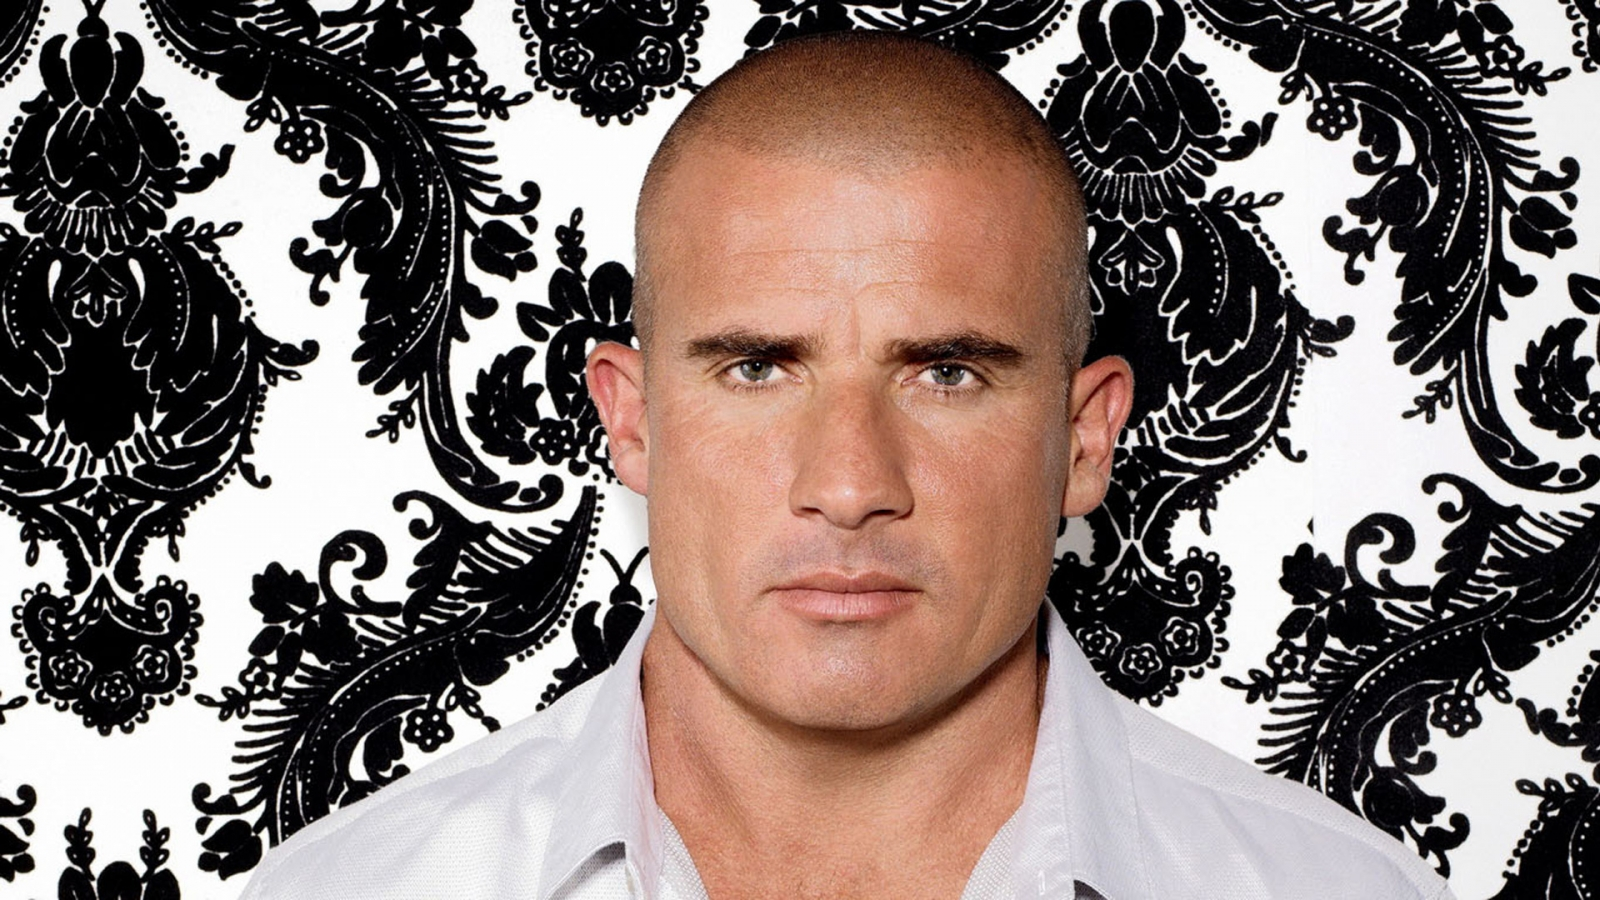 Dominic Purcell for 1600 x 900 HDTV resolution